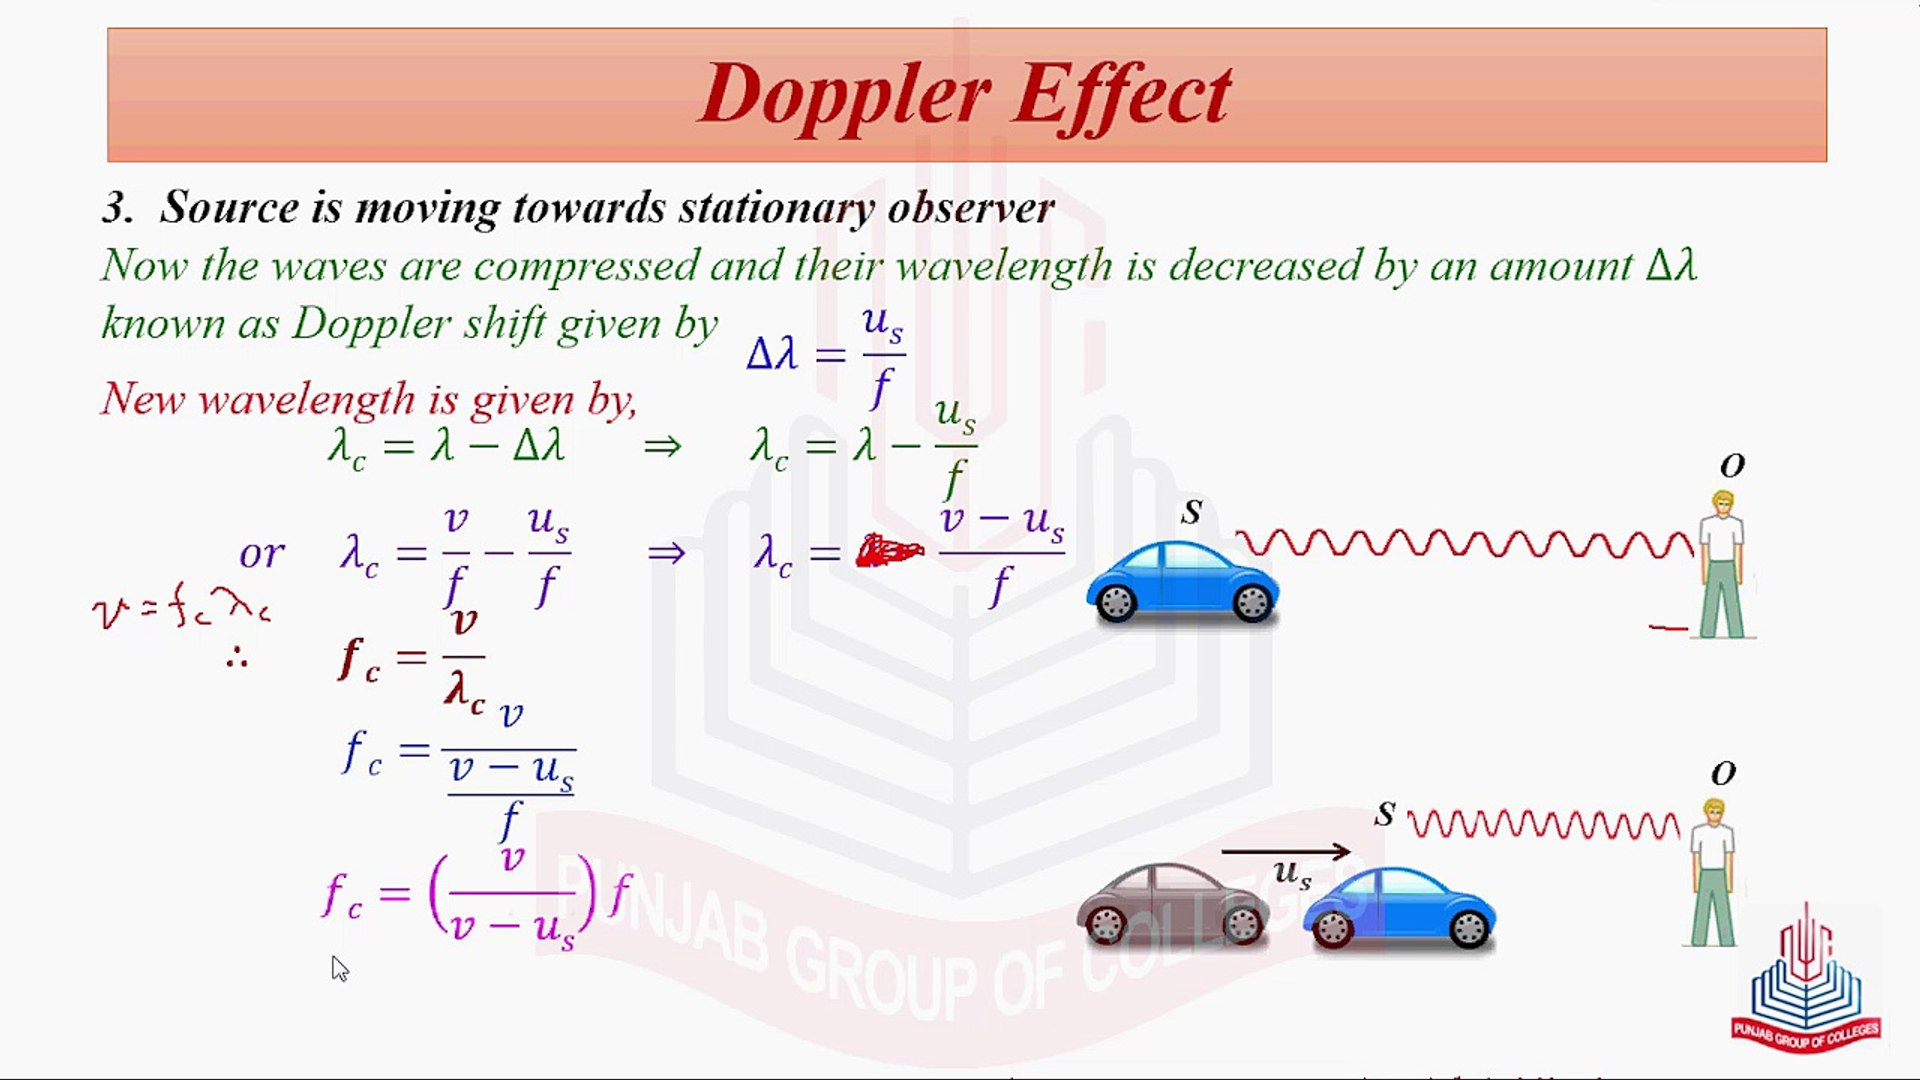 Doppler Effect ( Source is Moving towards stationary Observer )